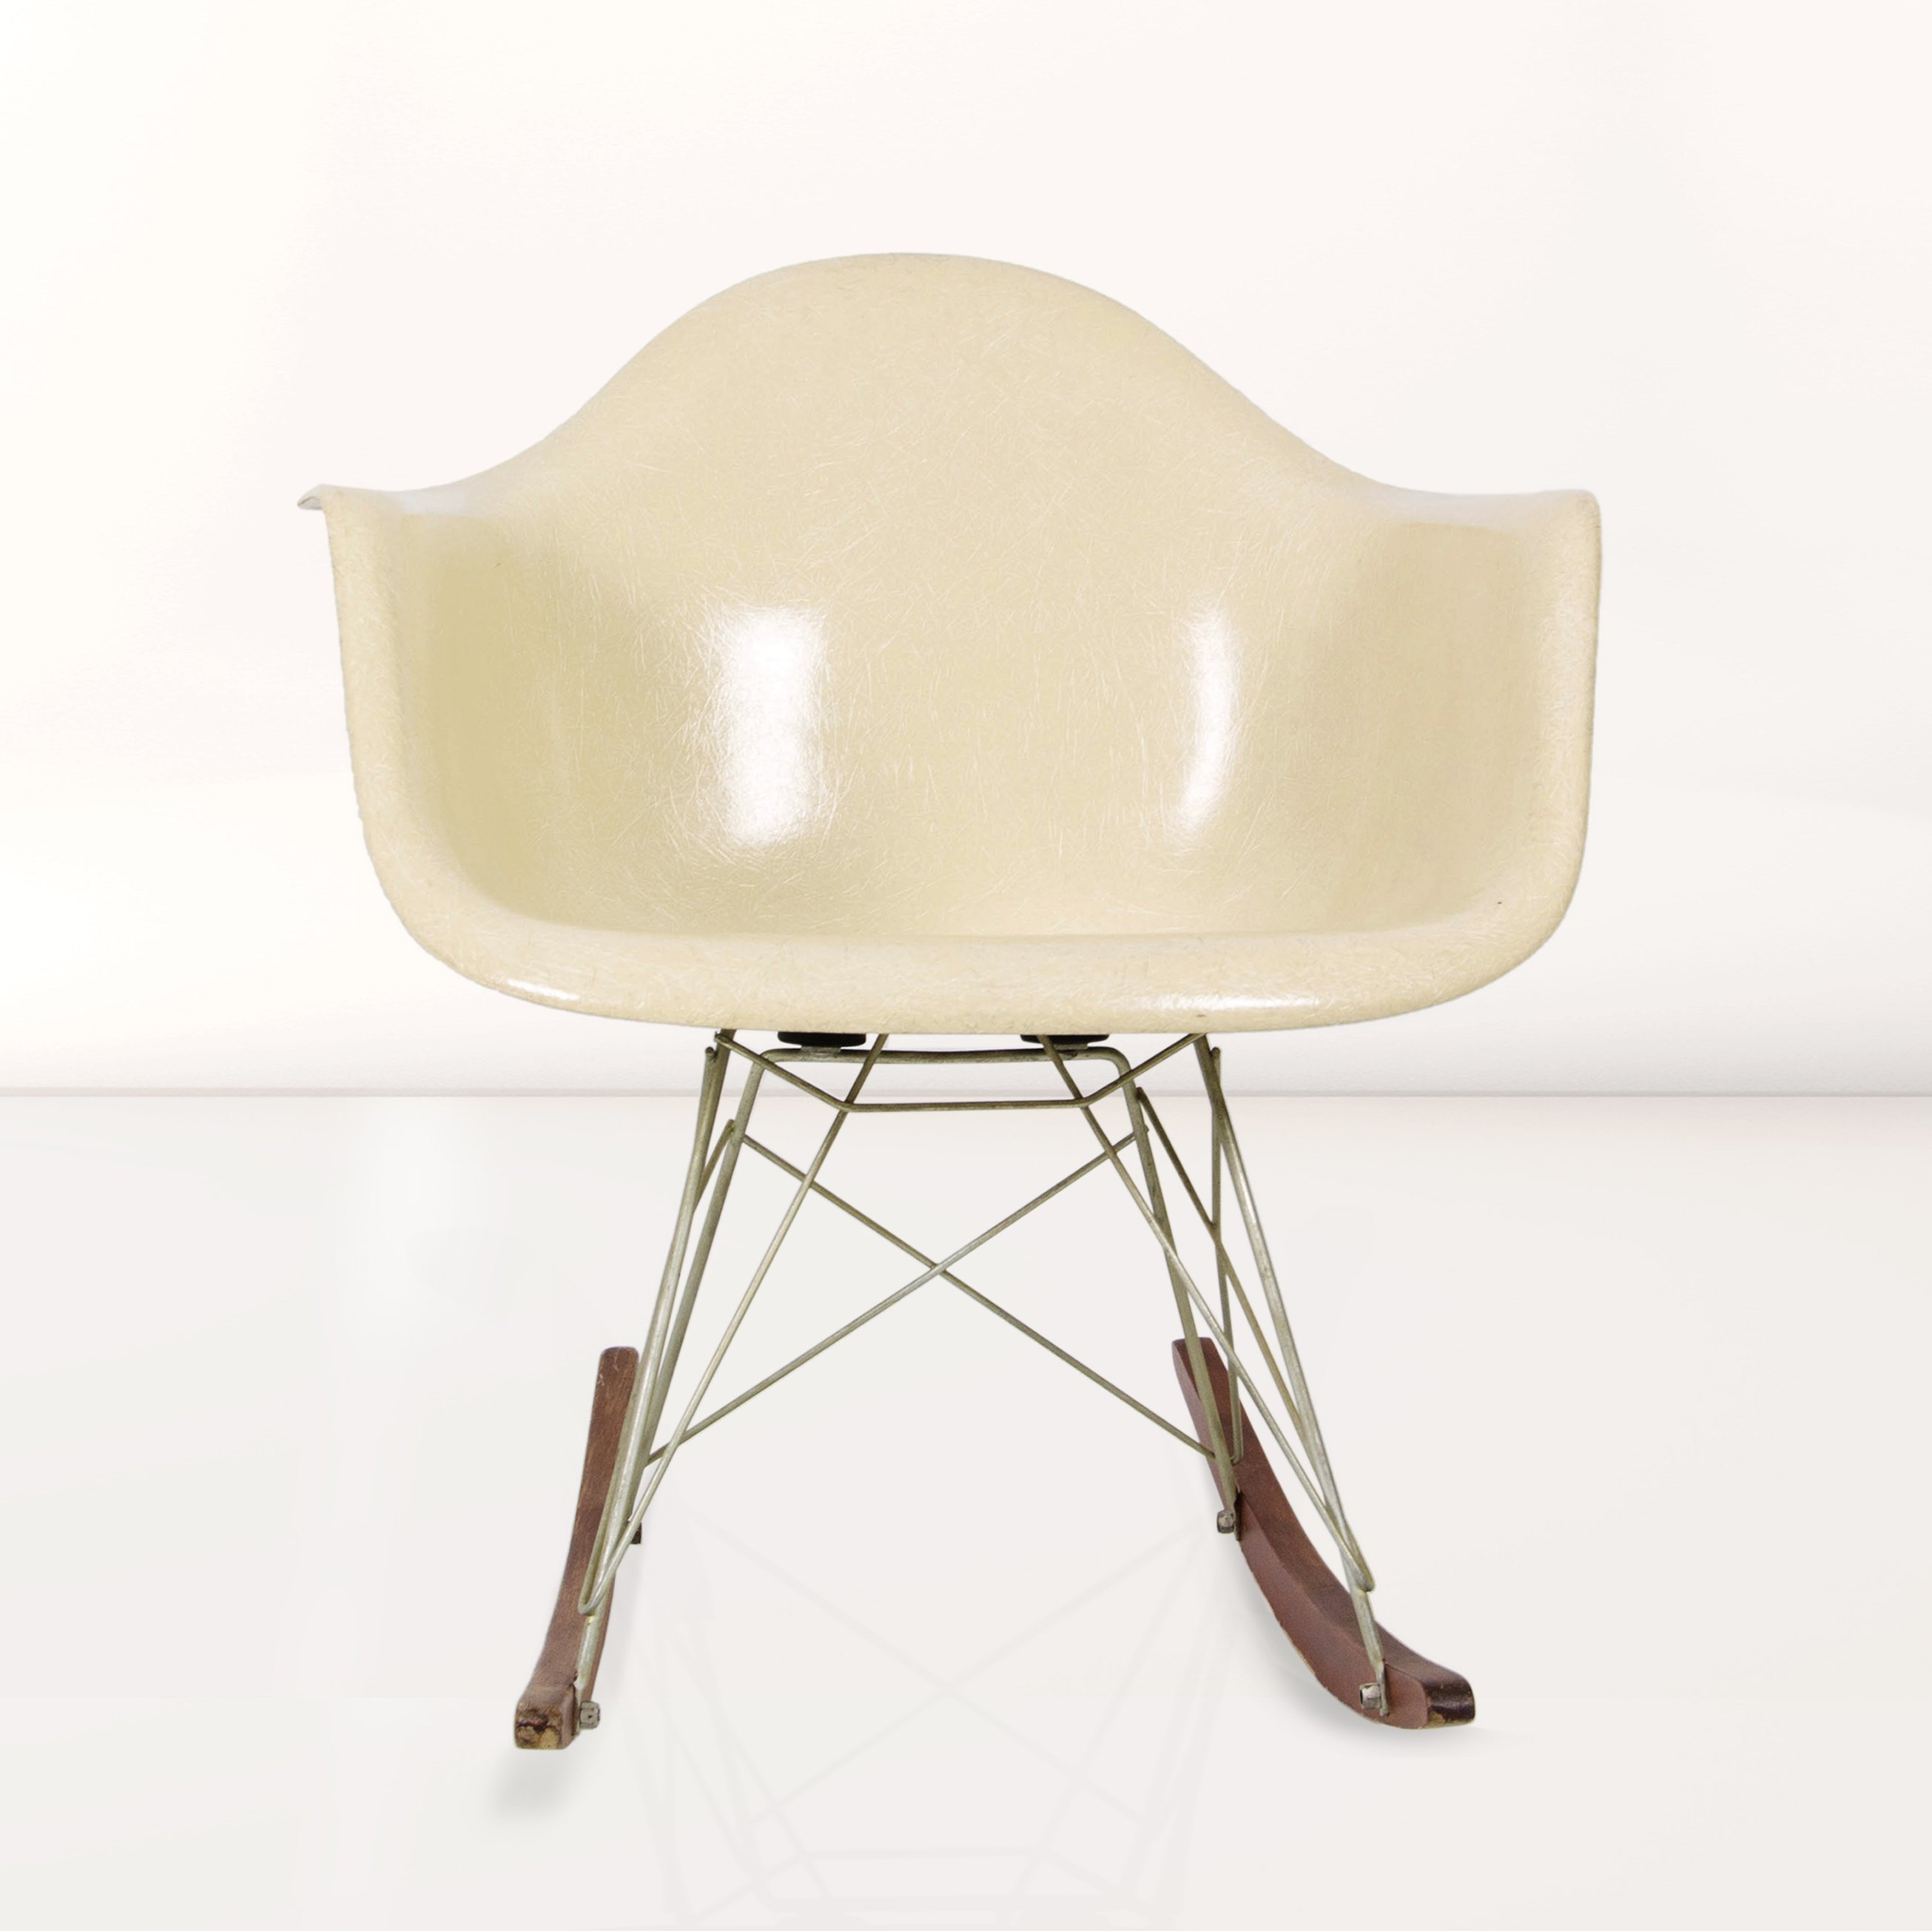 Rar rocking chair by charles ray eames for herman miller 1960s 69685 - Eames chair herman miller ...